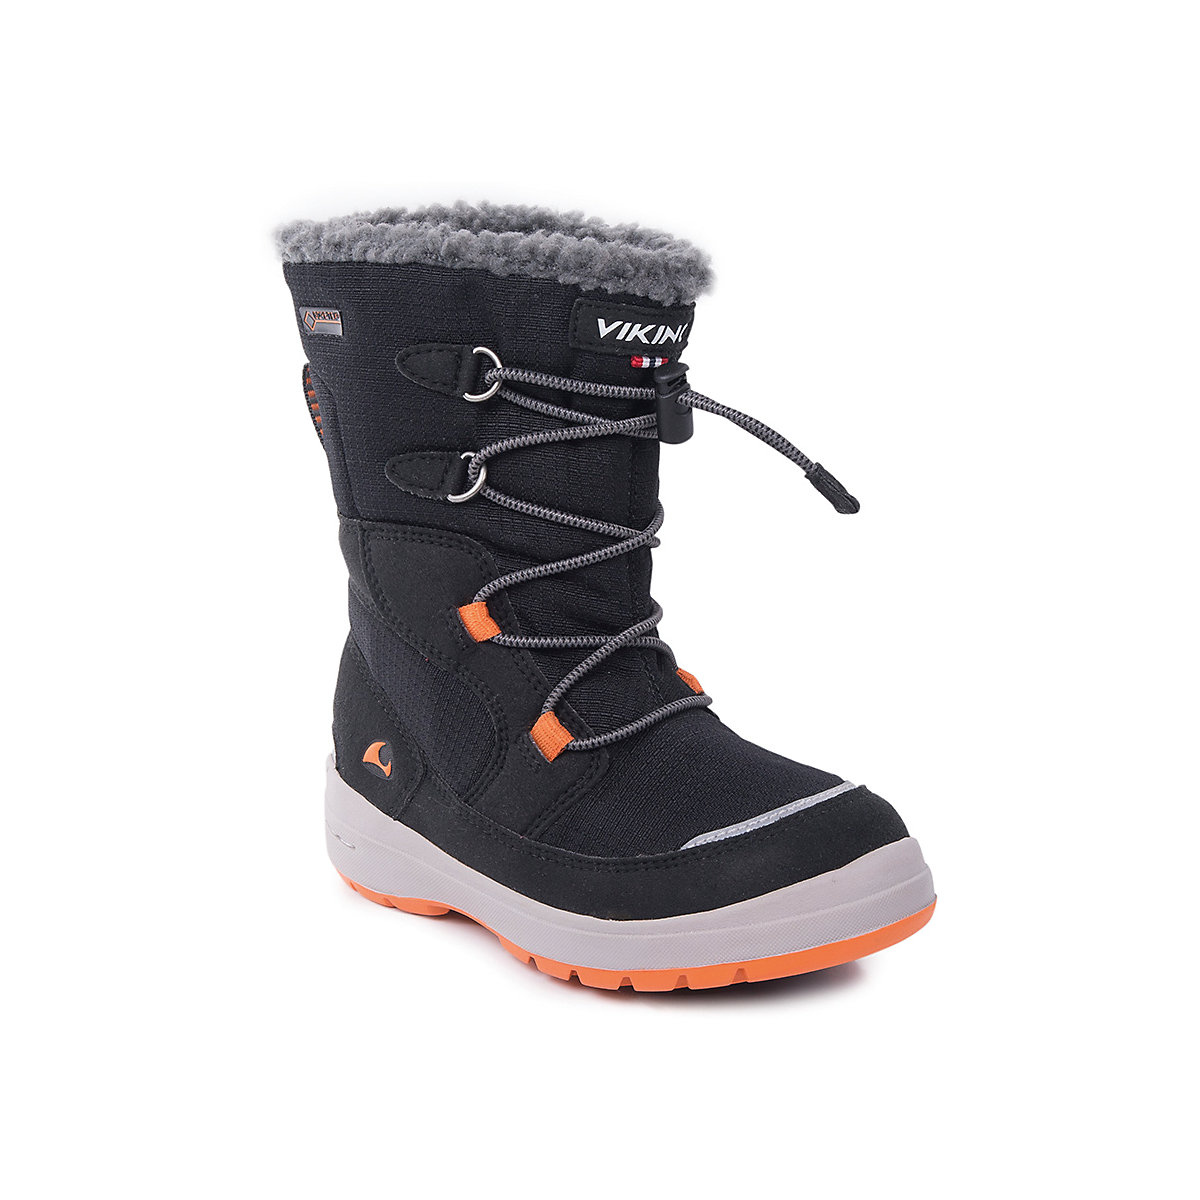 VIKING Boots 7169080 Winter Baby Boy shoes tiebao a1017 adult lacing up football boots outdoor lawn men women soccer shoes tpu outsole training soccer boots